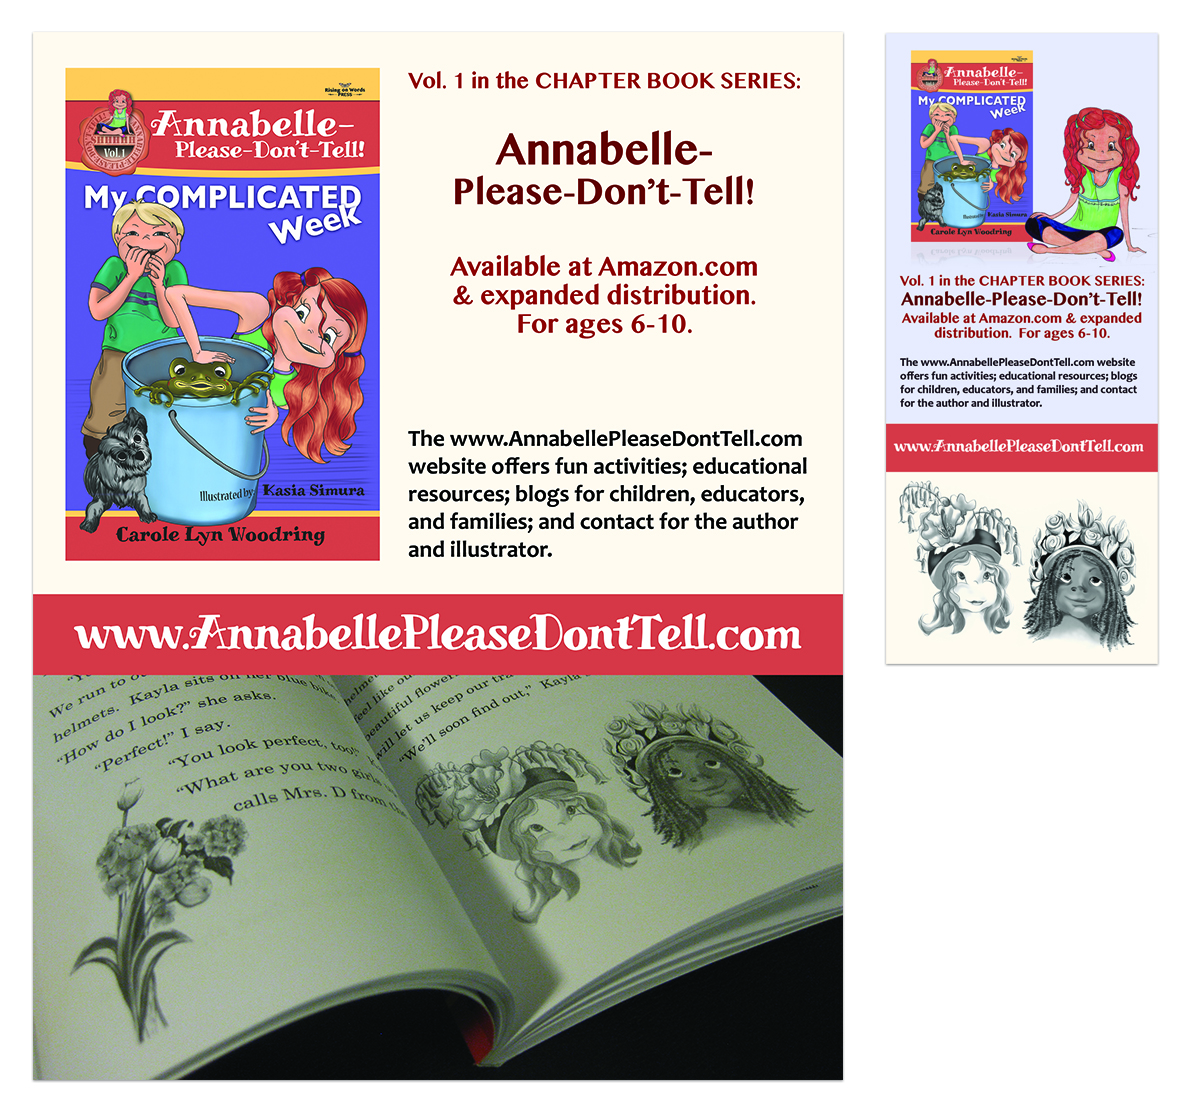 MARKETING FOR BOOK SERIES | Graphic Design, Posters, Bookmarks, and Other Marketing Materials for Annabelle-Please-Don't-Tell! Book Series